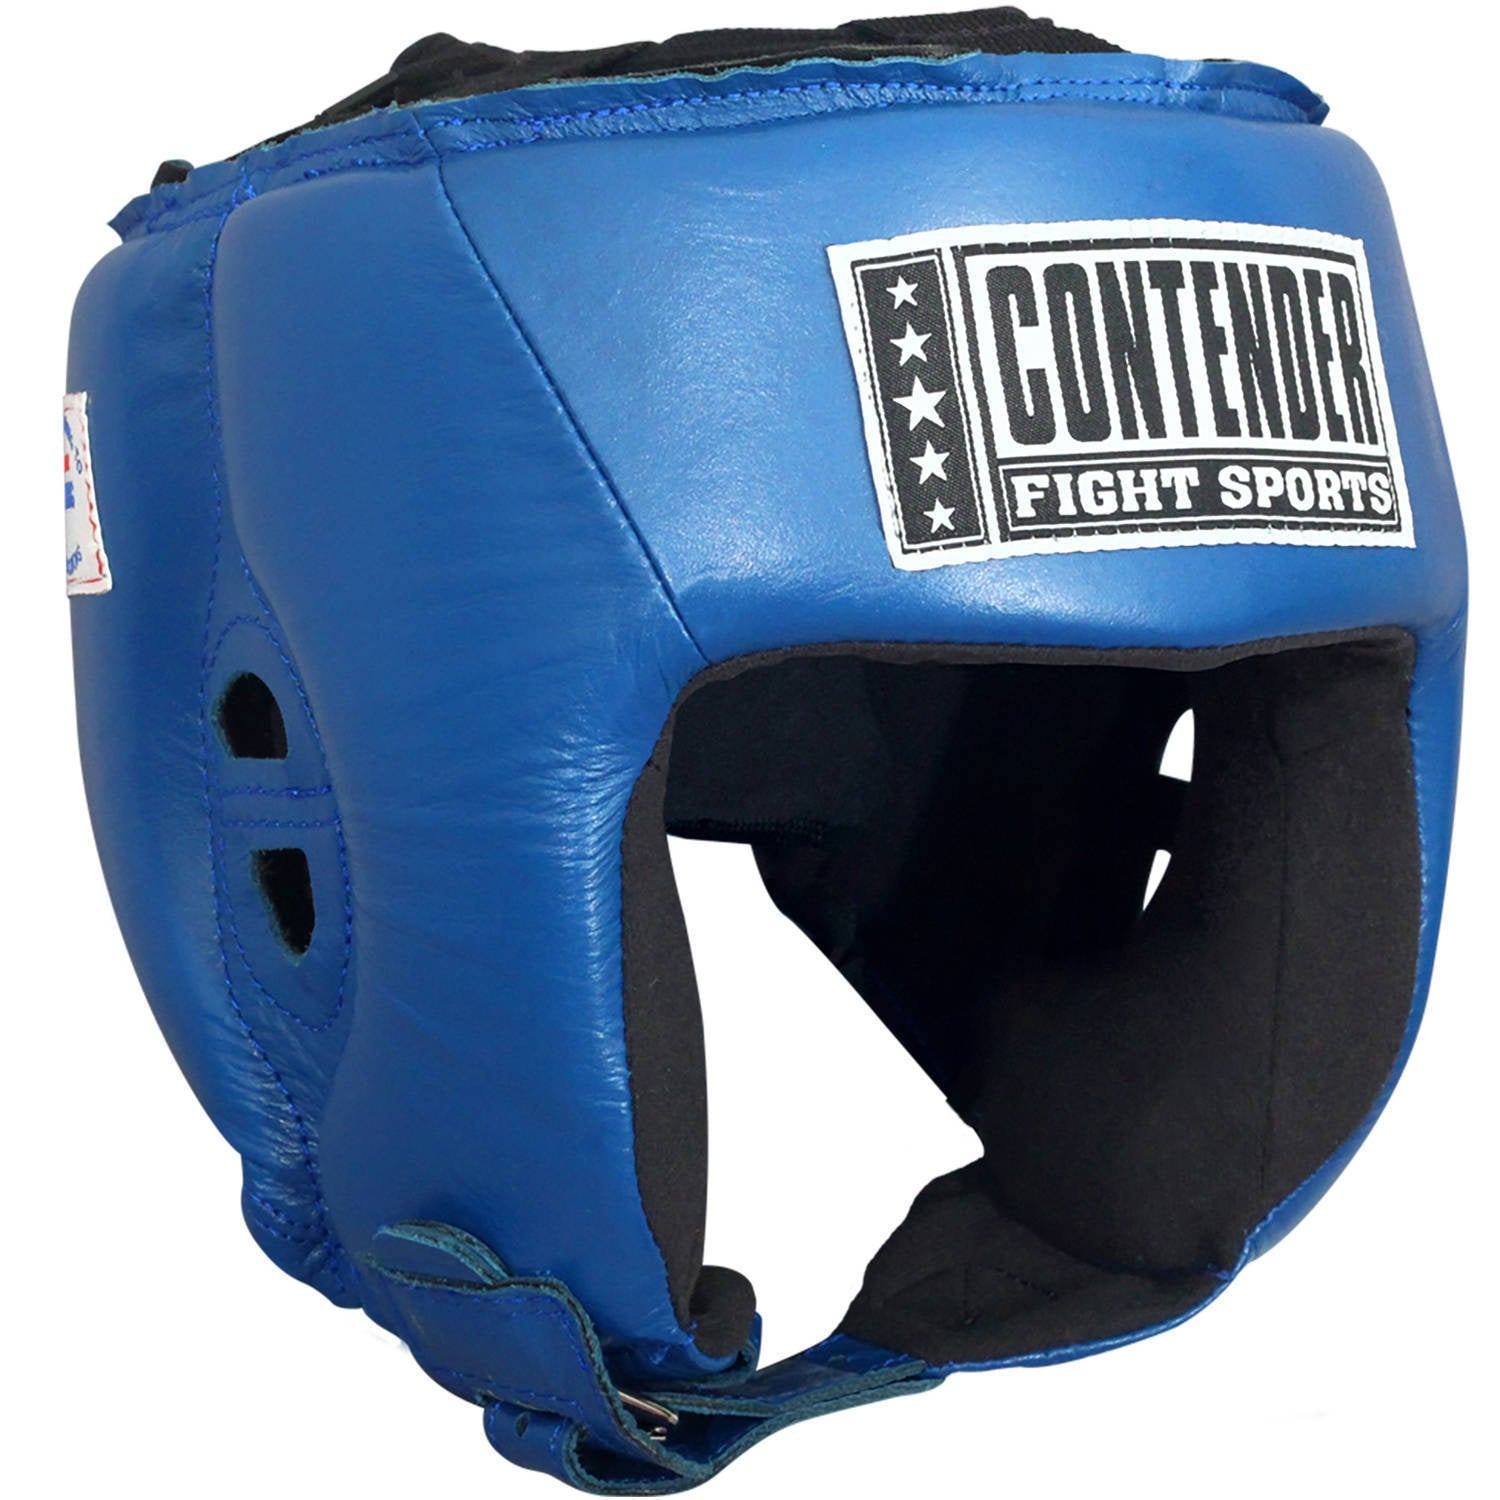 CONTENDER HEADGEAR COMPETITION APPROVED AHG1 BLUE - MSM FIGHT SHOP